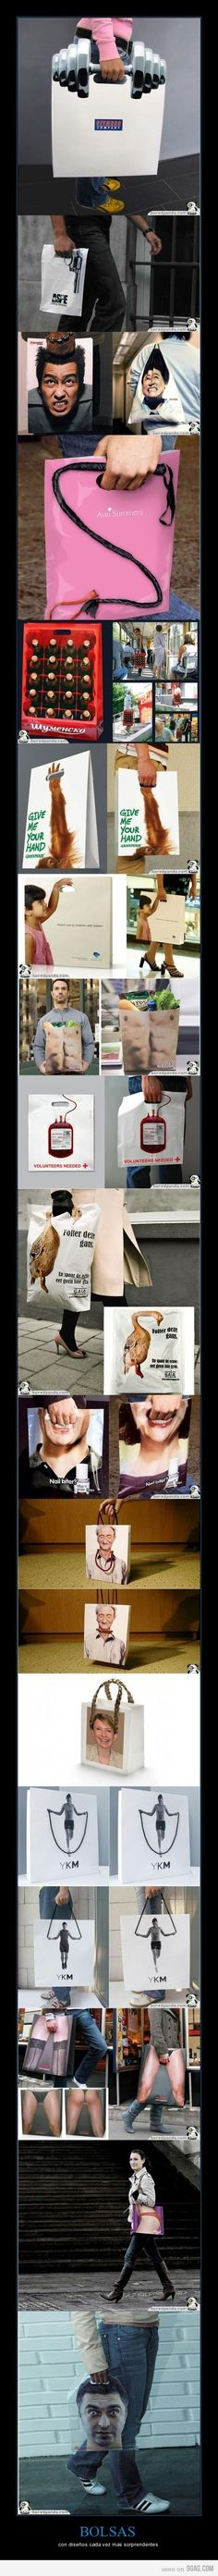 Store Bags- with some hilarious designs